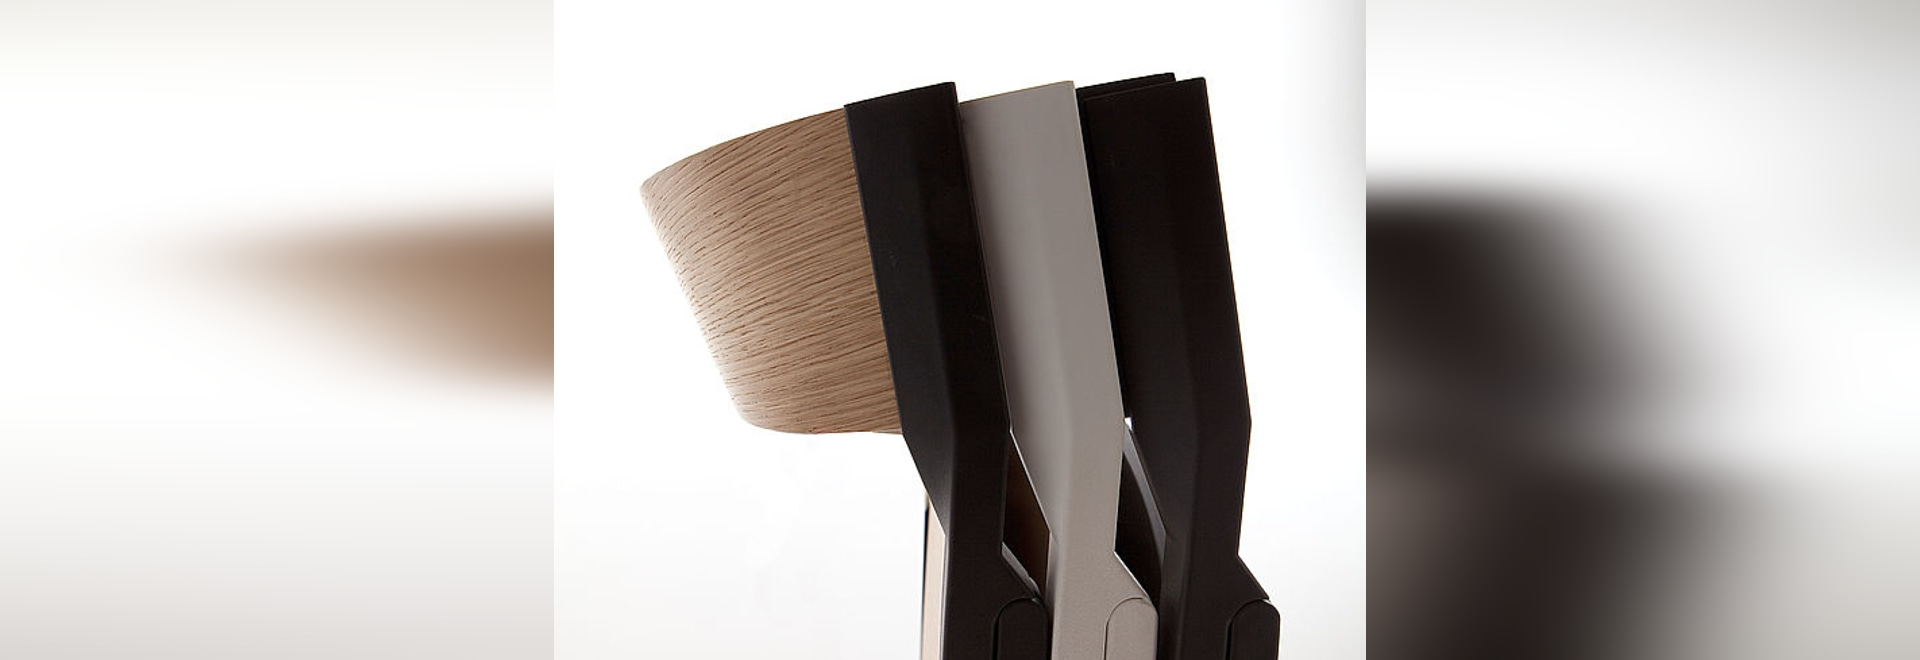 KLAPP Not only a folding chair, but a beautiful chair which can fit anywere